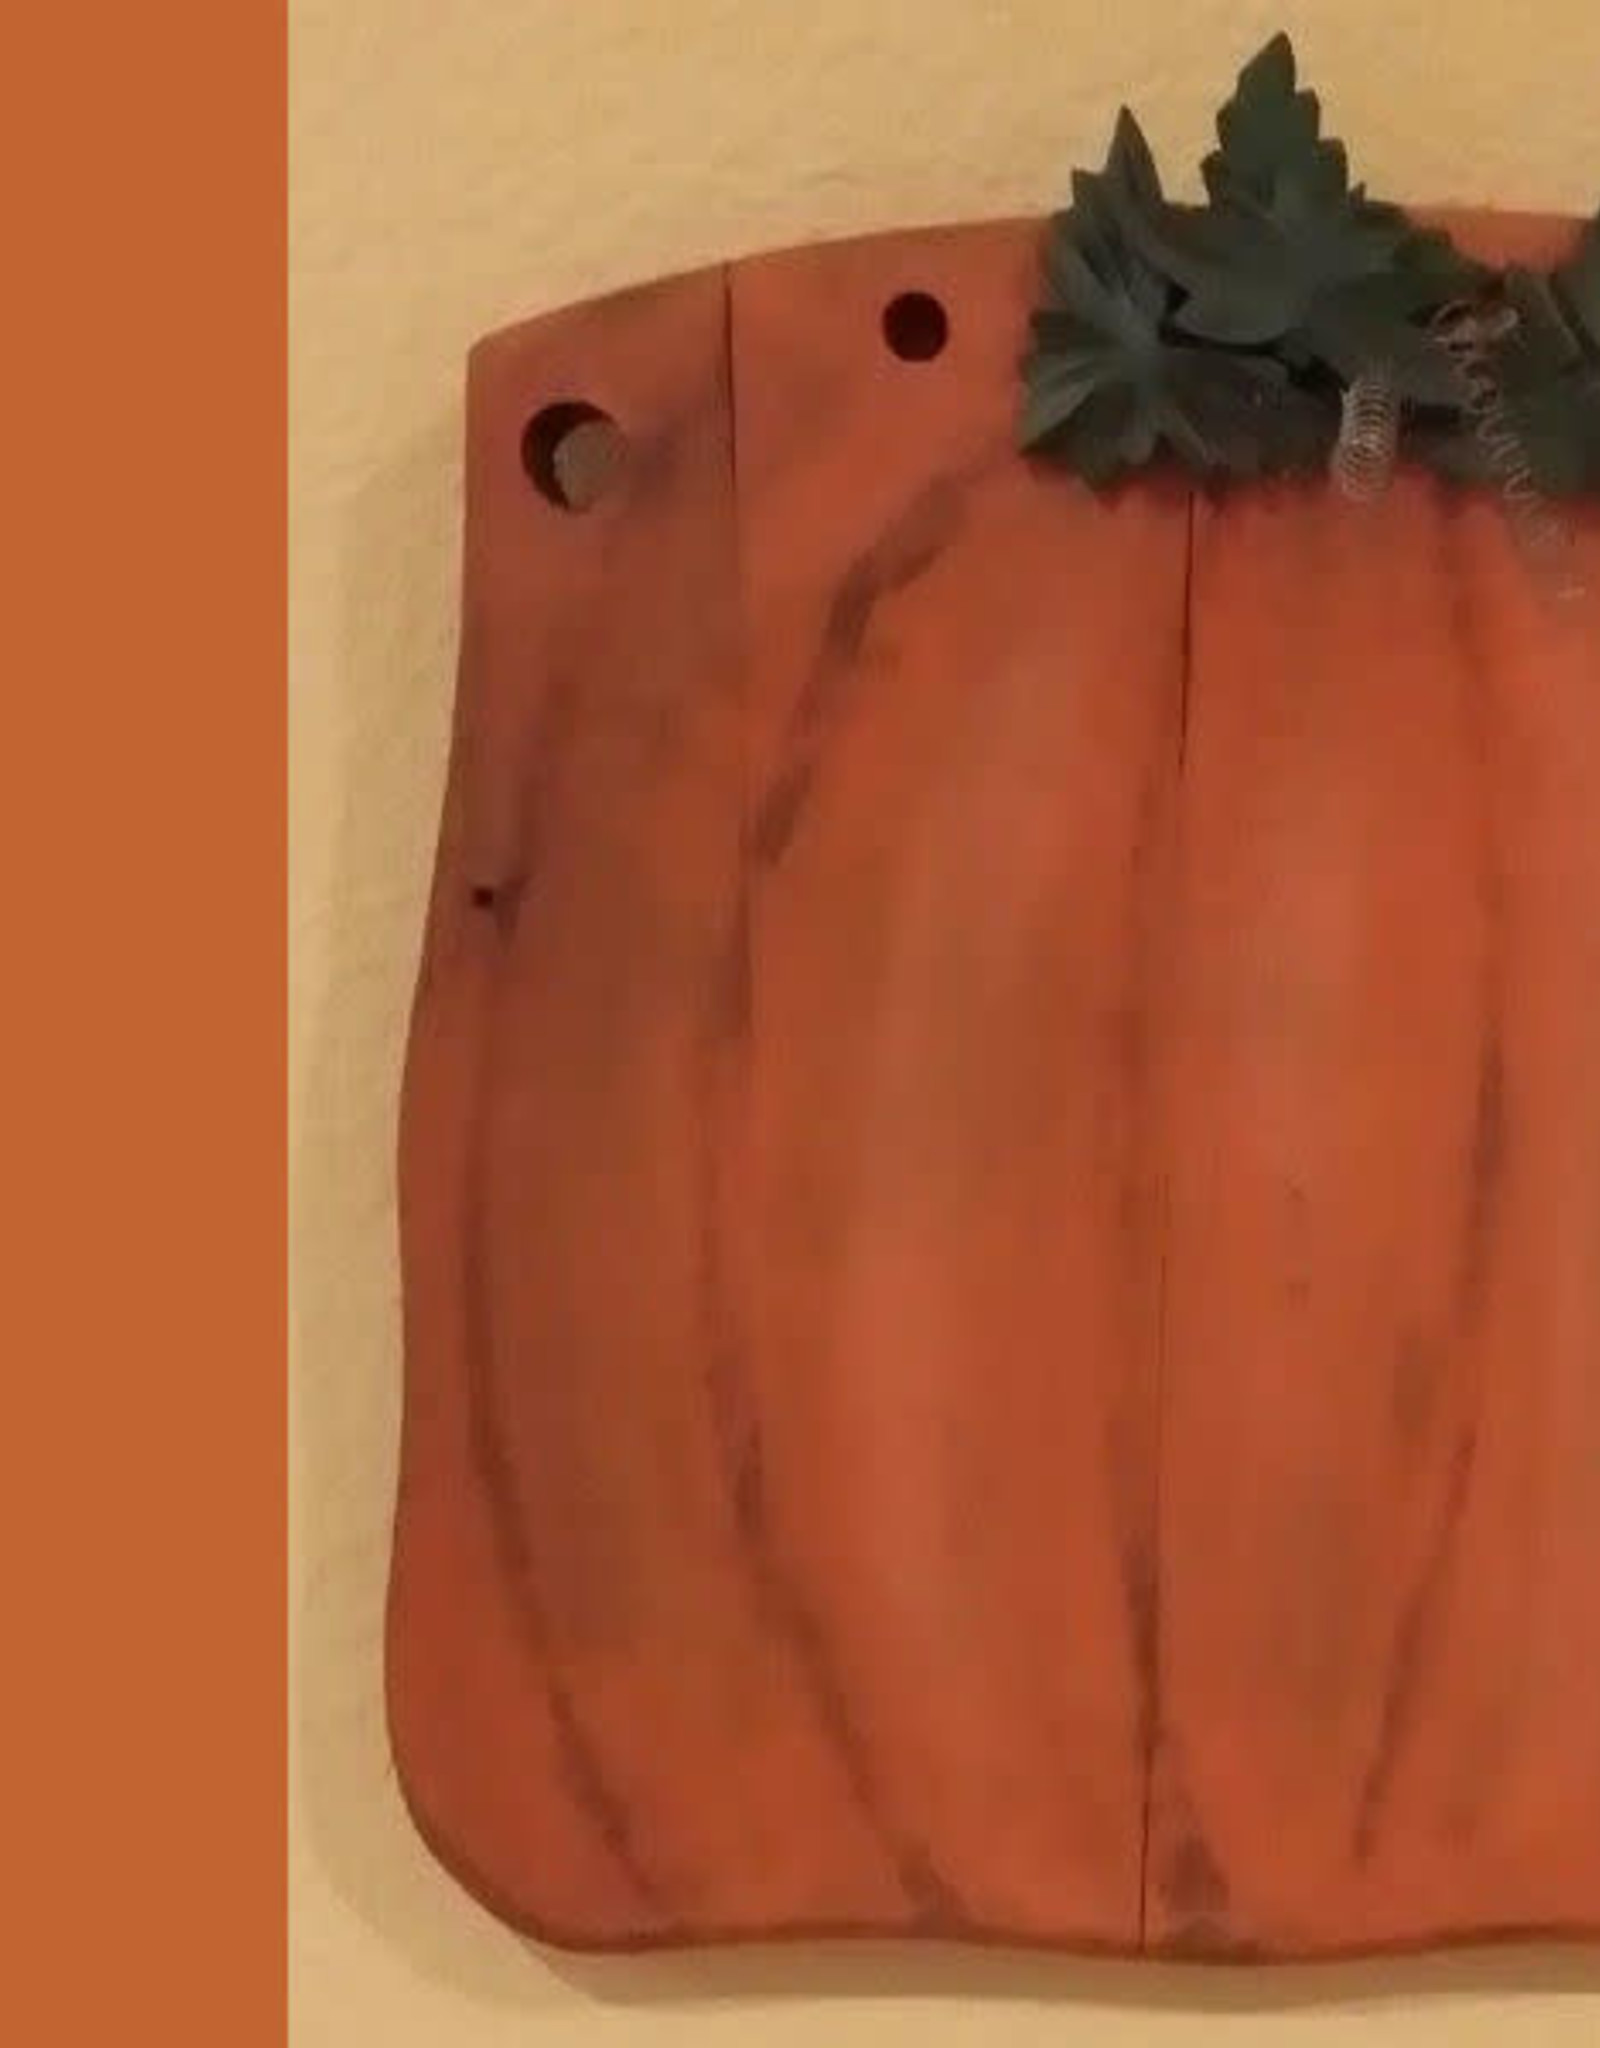 Country Chic Country Chic Paint Pint - 16oz Pumpkin Spice